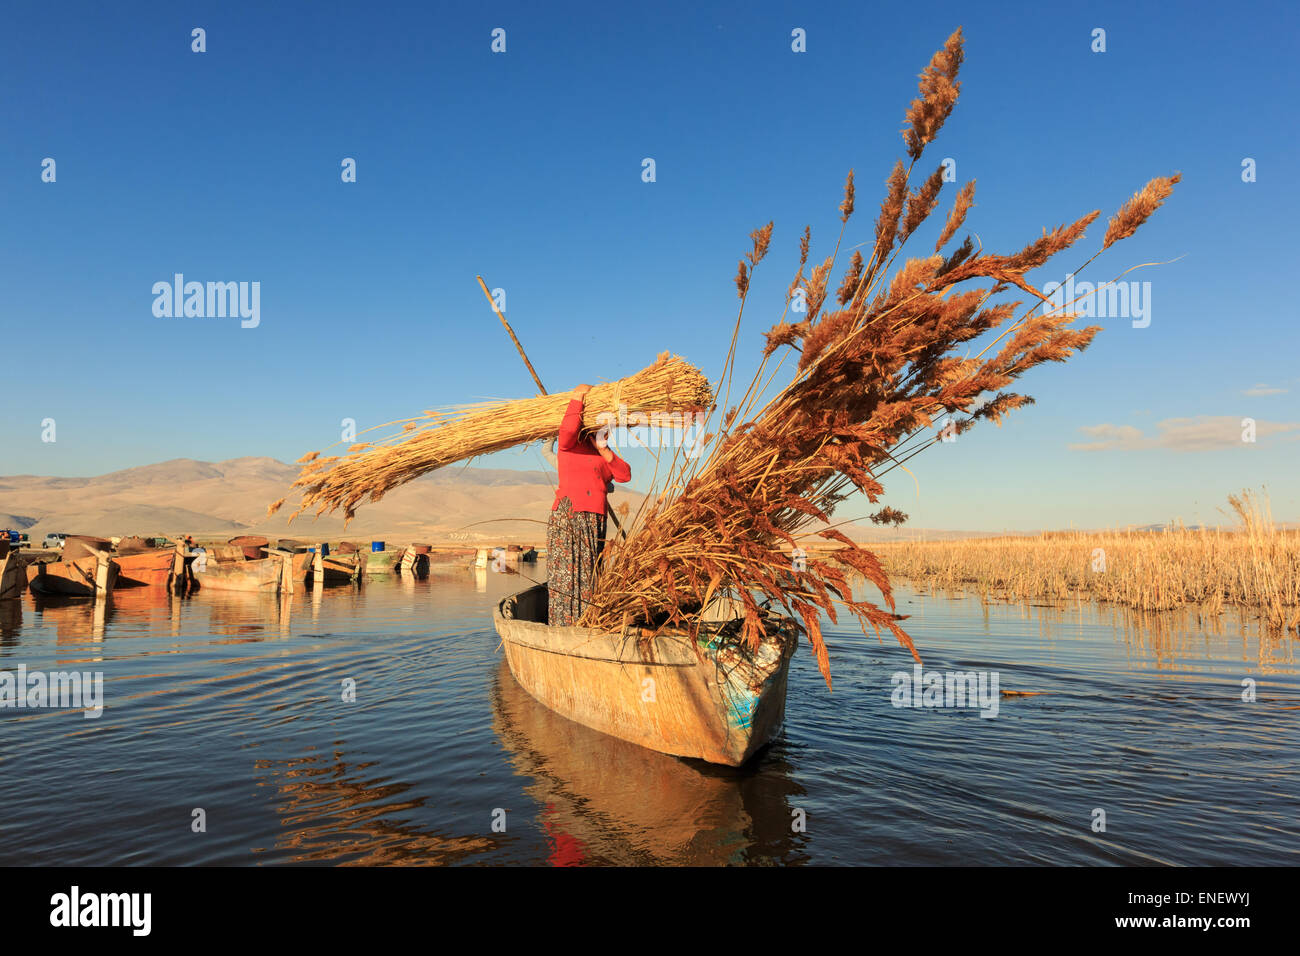 AFYONKARAHISAR,TURKEY - November 9,2013 : Unidentified workers harvest reeds and bulrush from the Lake Eber in Afyon,Turkey - Stock Image